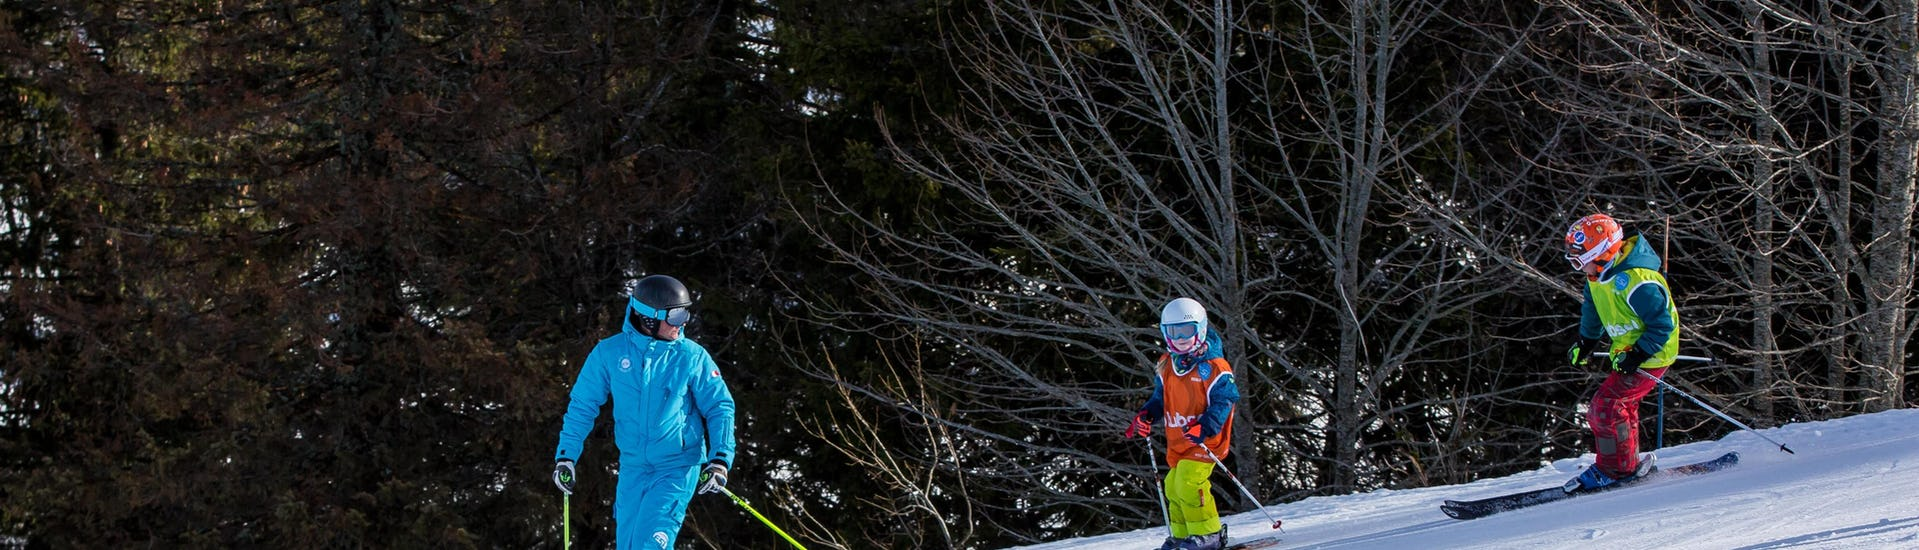 Private Ski Lessons for Kids - Christmas - Arc 1800